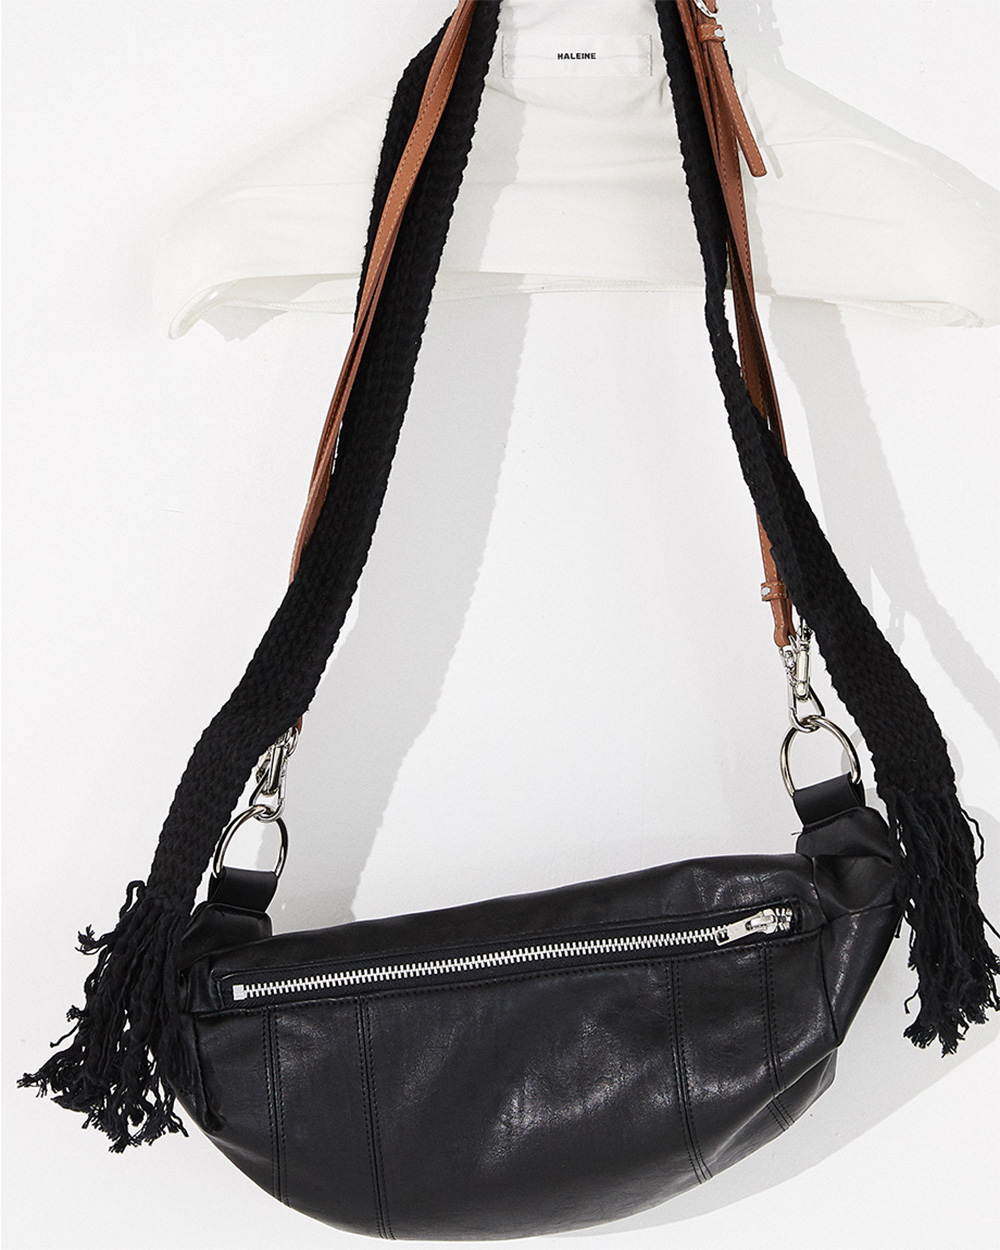 HALEINE알렌느 BLACK eco leather tassle cross bag(NA004)